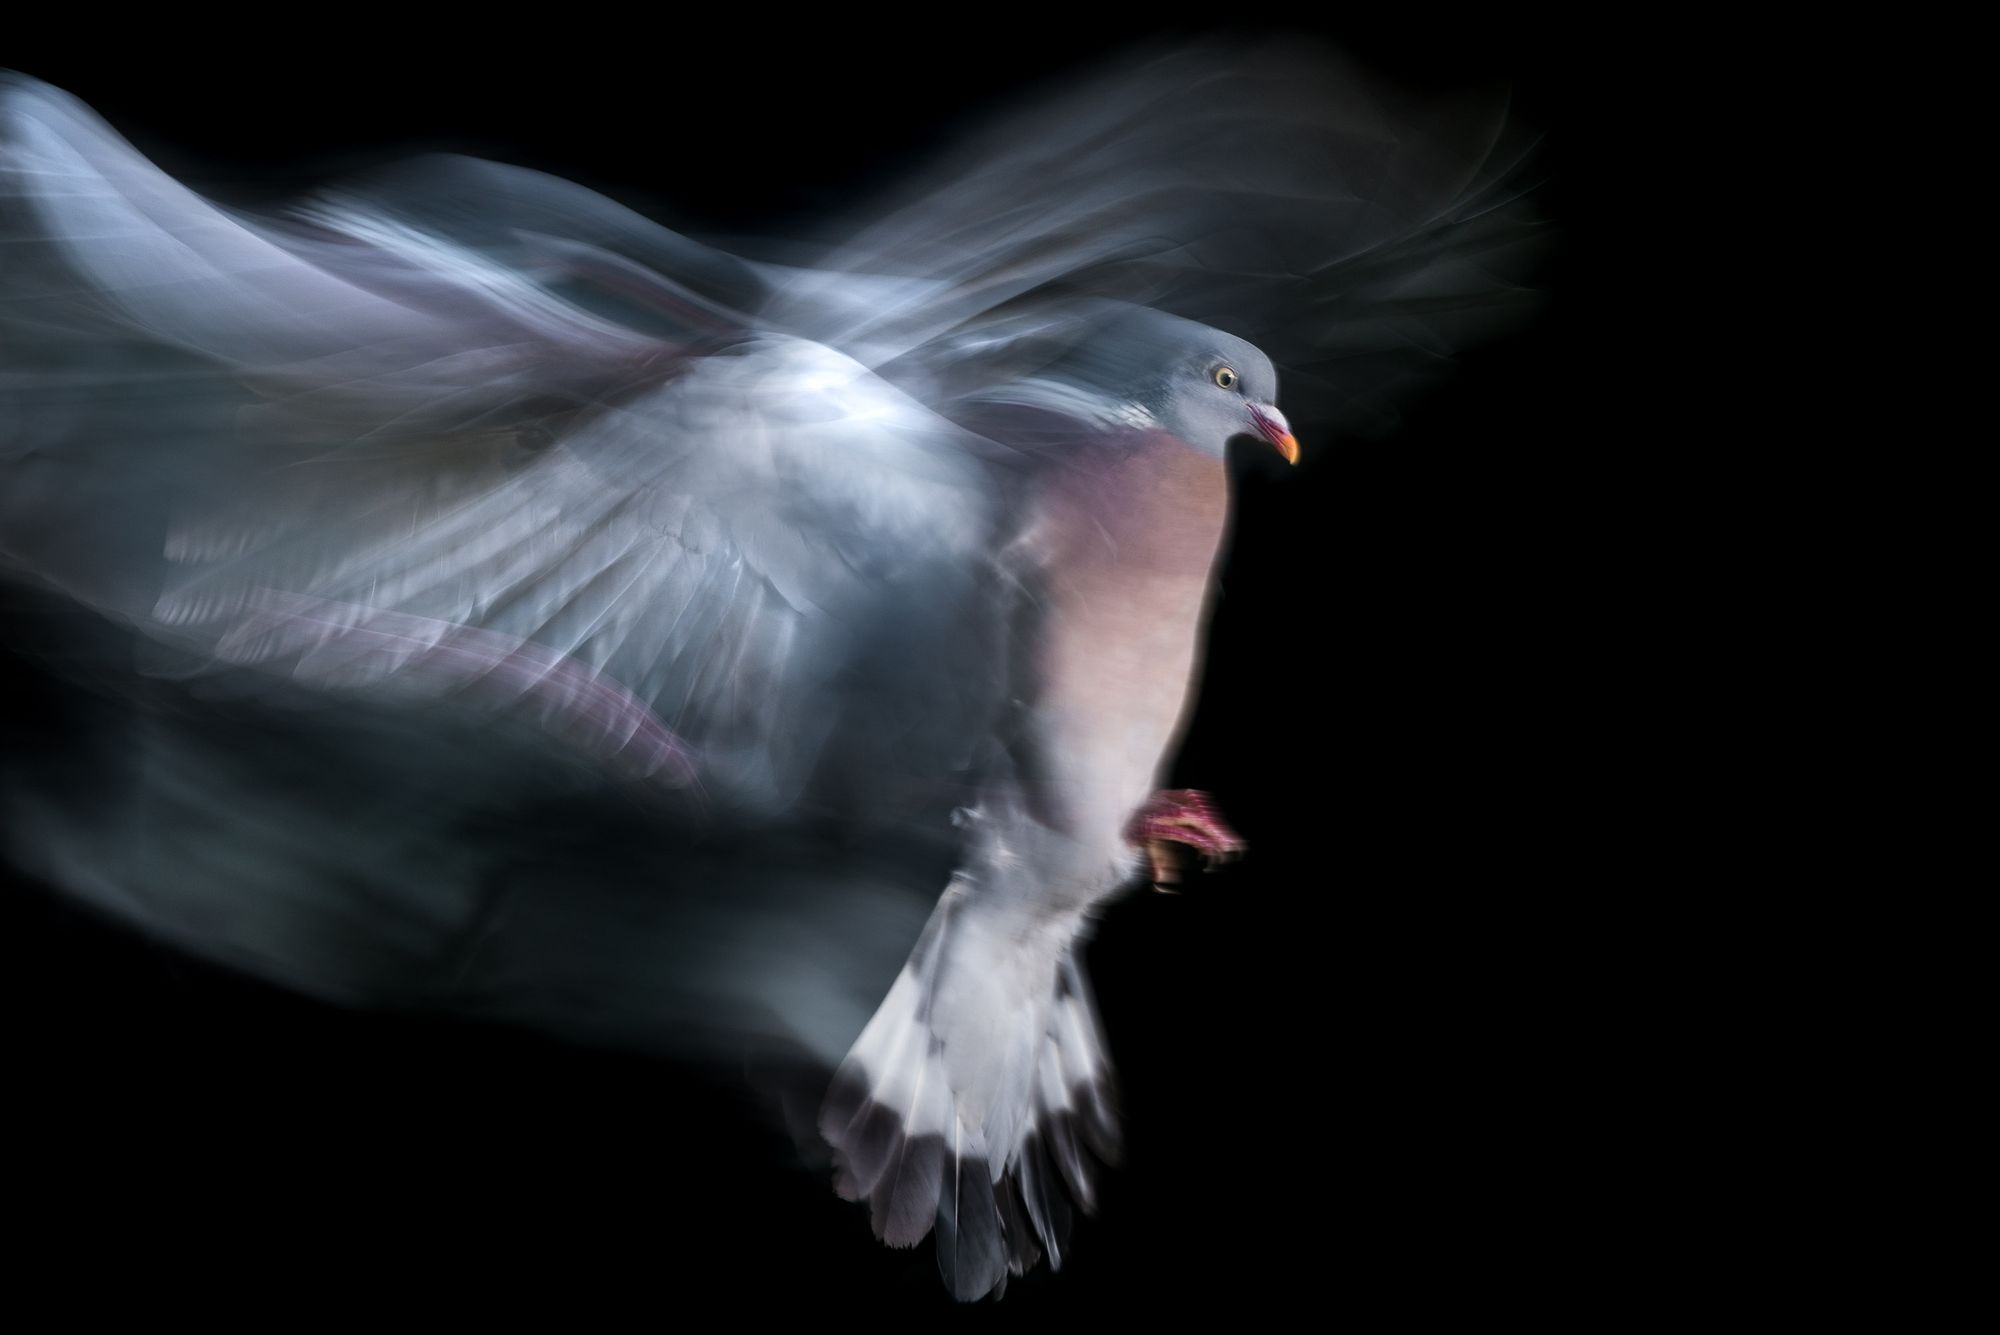 photographing pigeons, pigeon portrait, urban wildlife photography, blur, motion